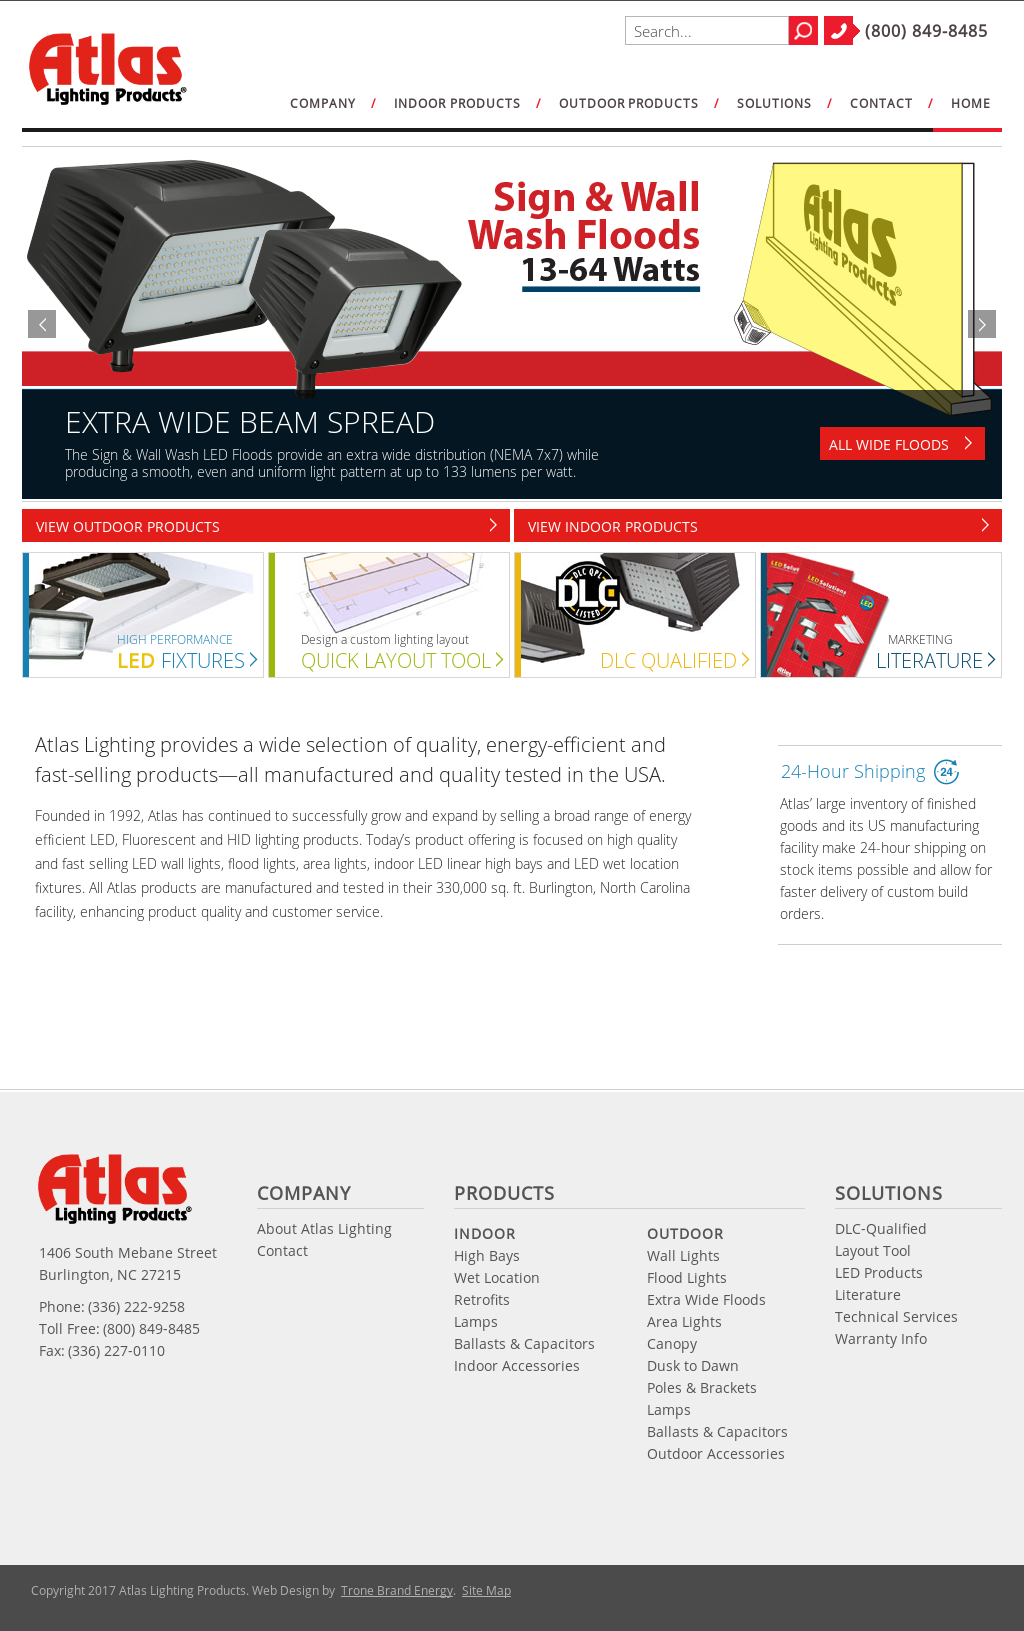 Atlas Lighting Products Website History